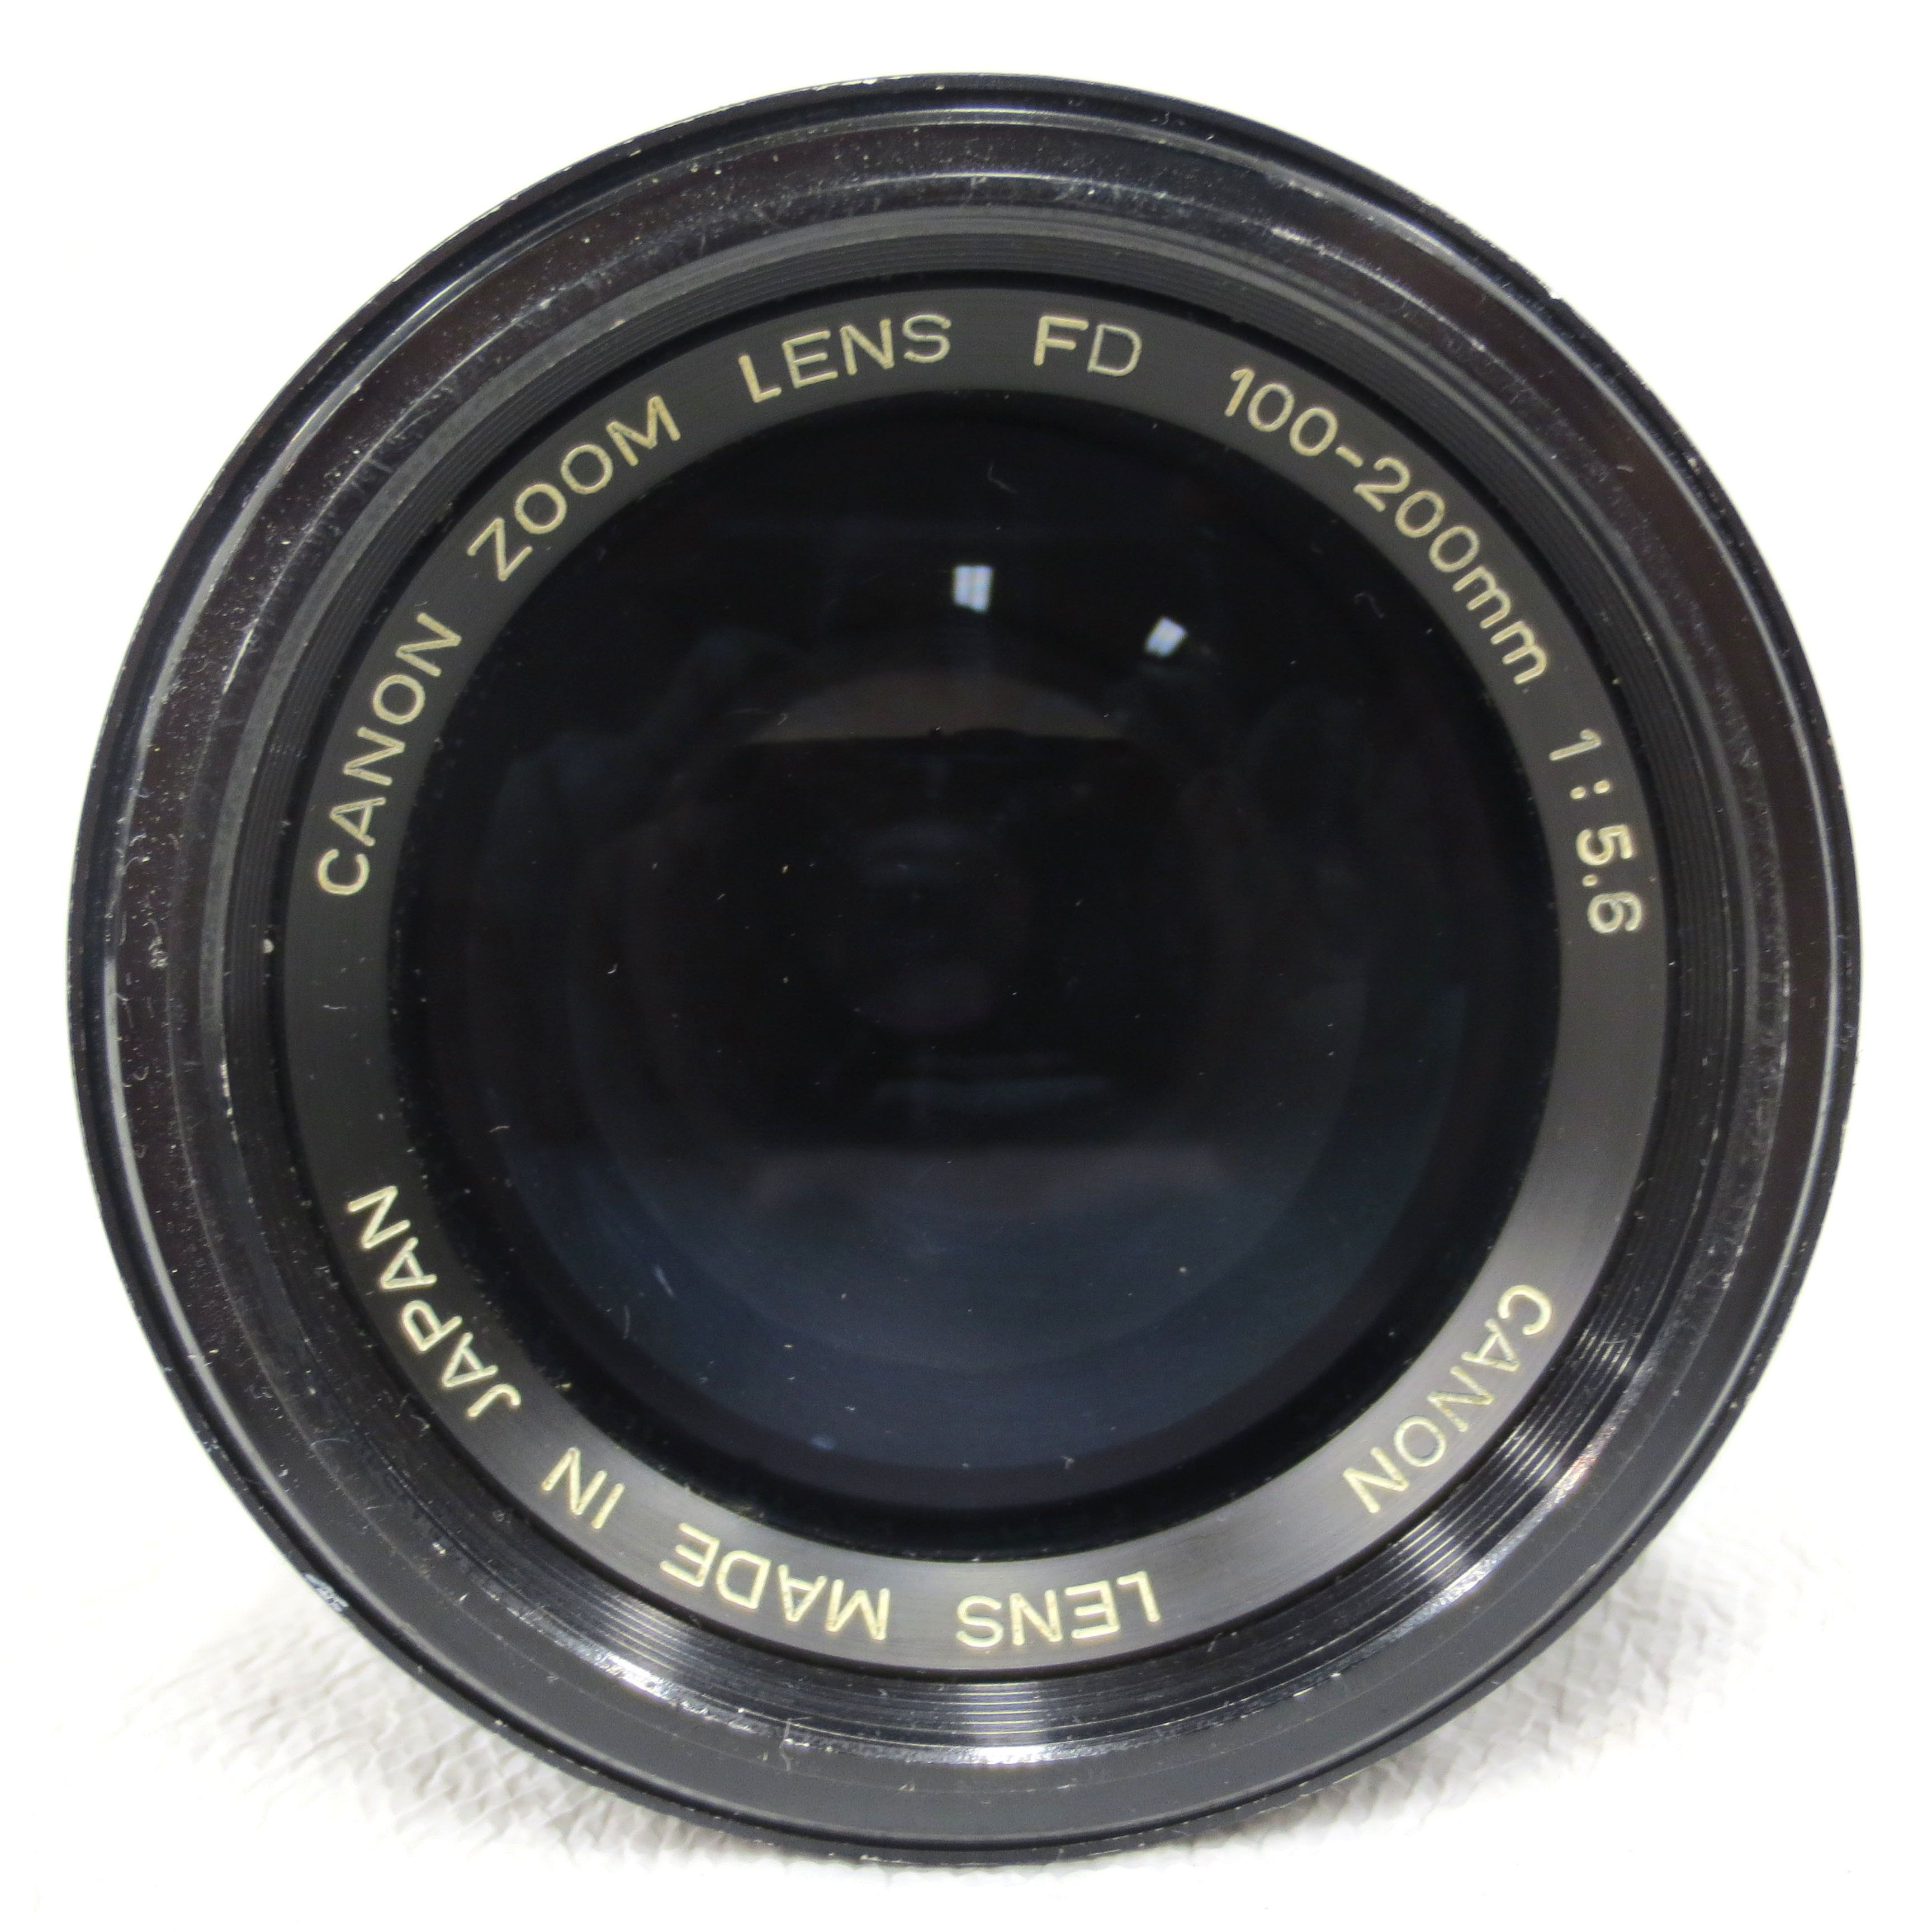 Canon Camera Lens Zoom Fd 100 200 Mm 1 5 6 Made In Japan Camera Lenses Canon Canon Camera Digital Camera